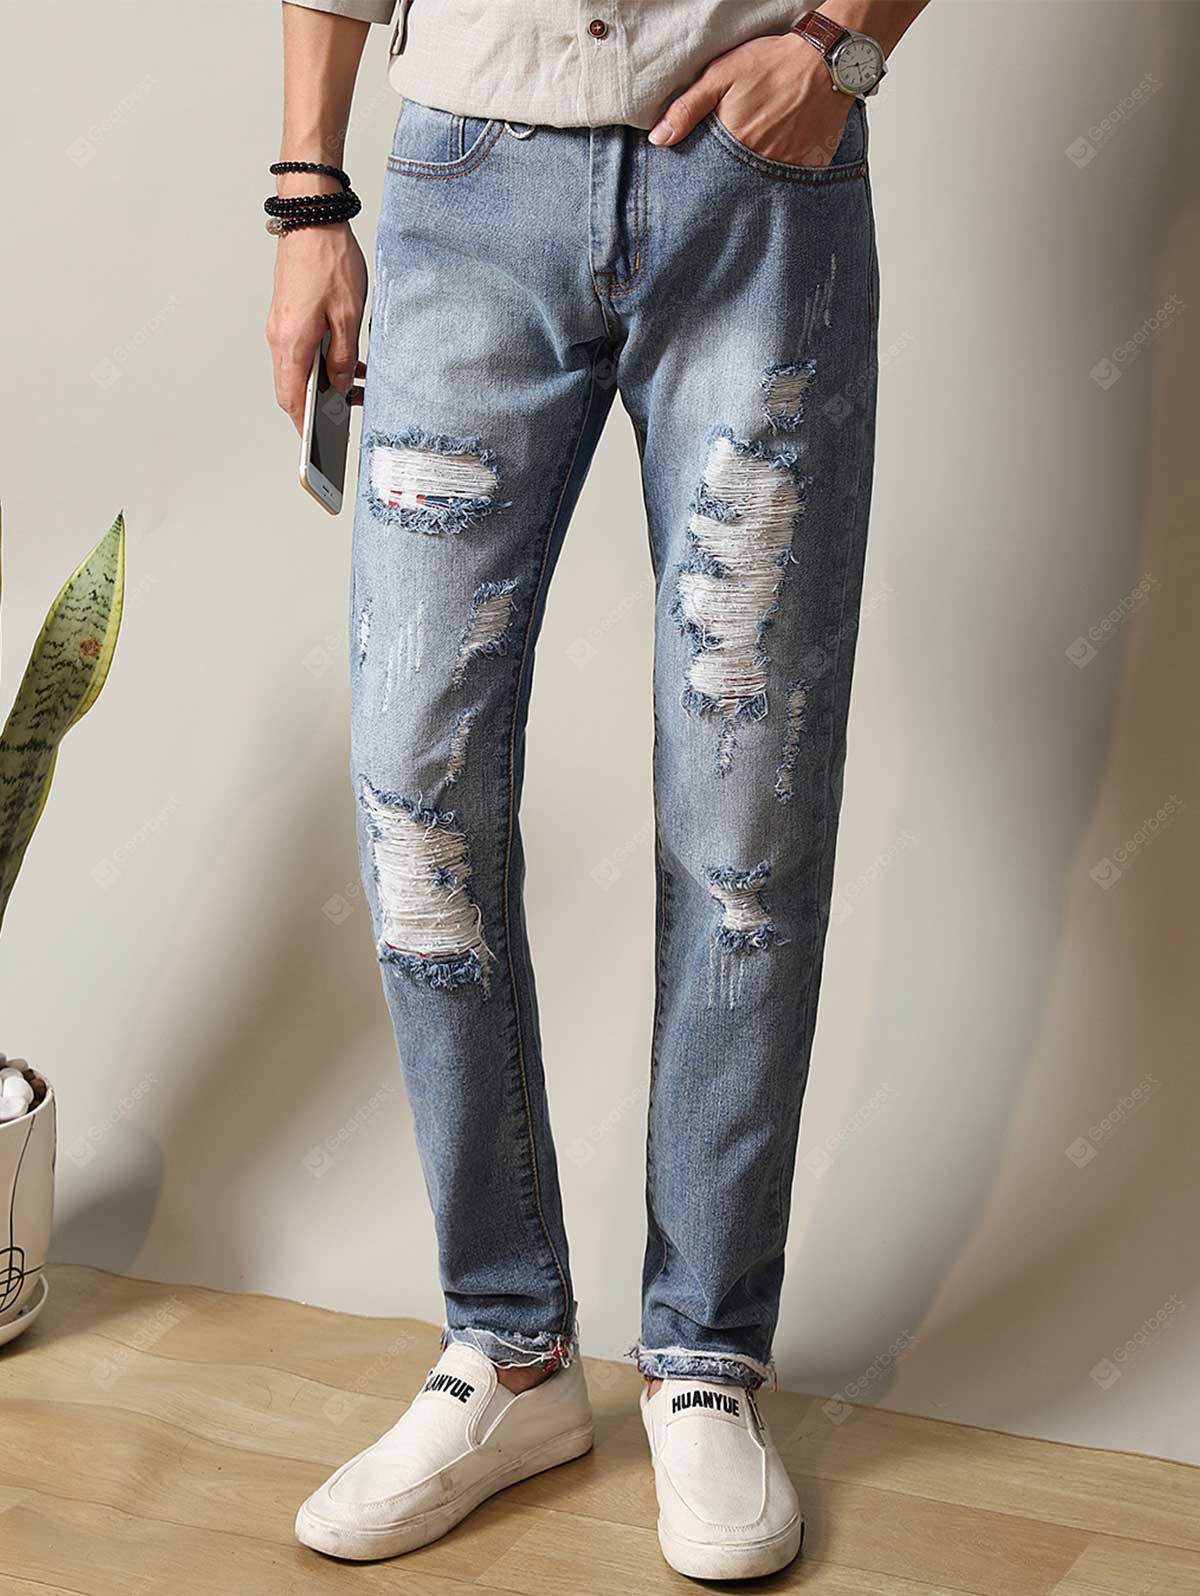 CLOUDY 32 Zipper Fly Metal Loop Straight Leg Ripped Jeans